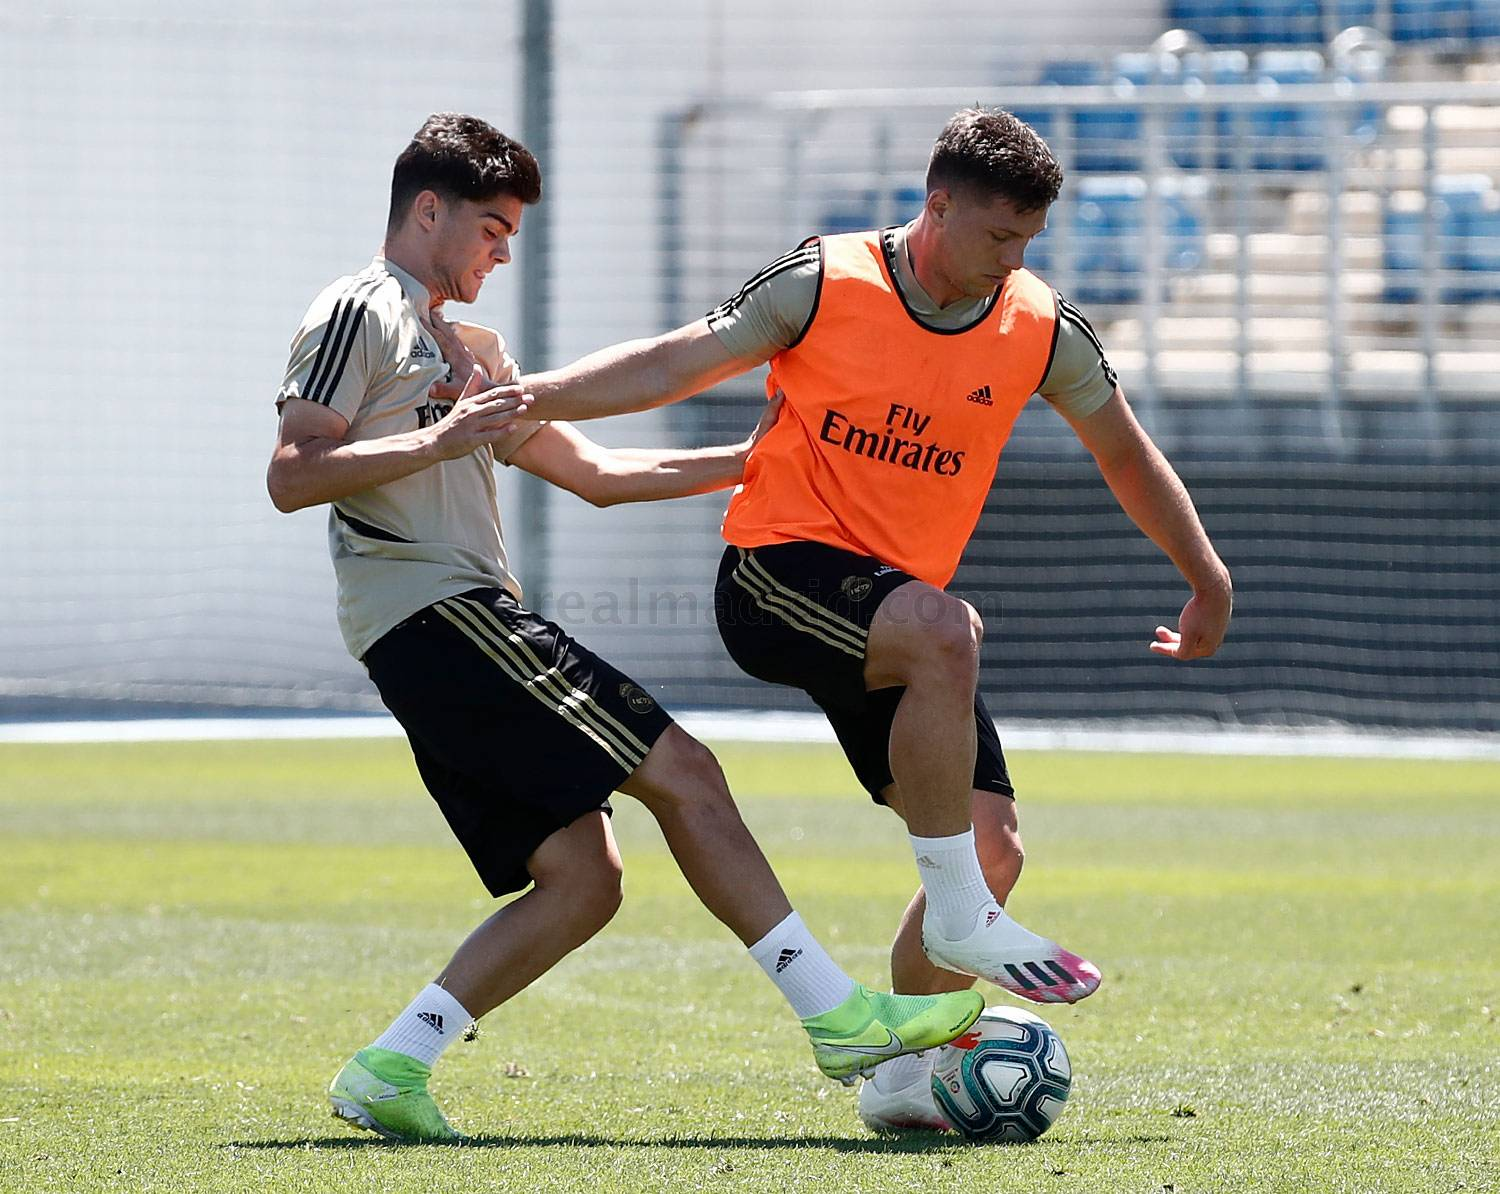 Real Madrid - Entrenamiento del Real Madrid  - 04-07-2020